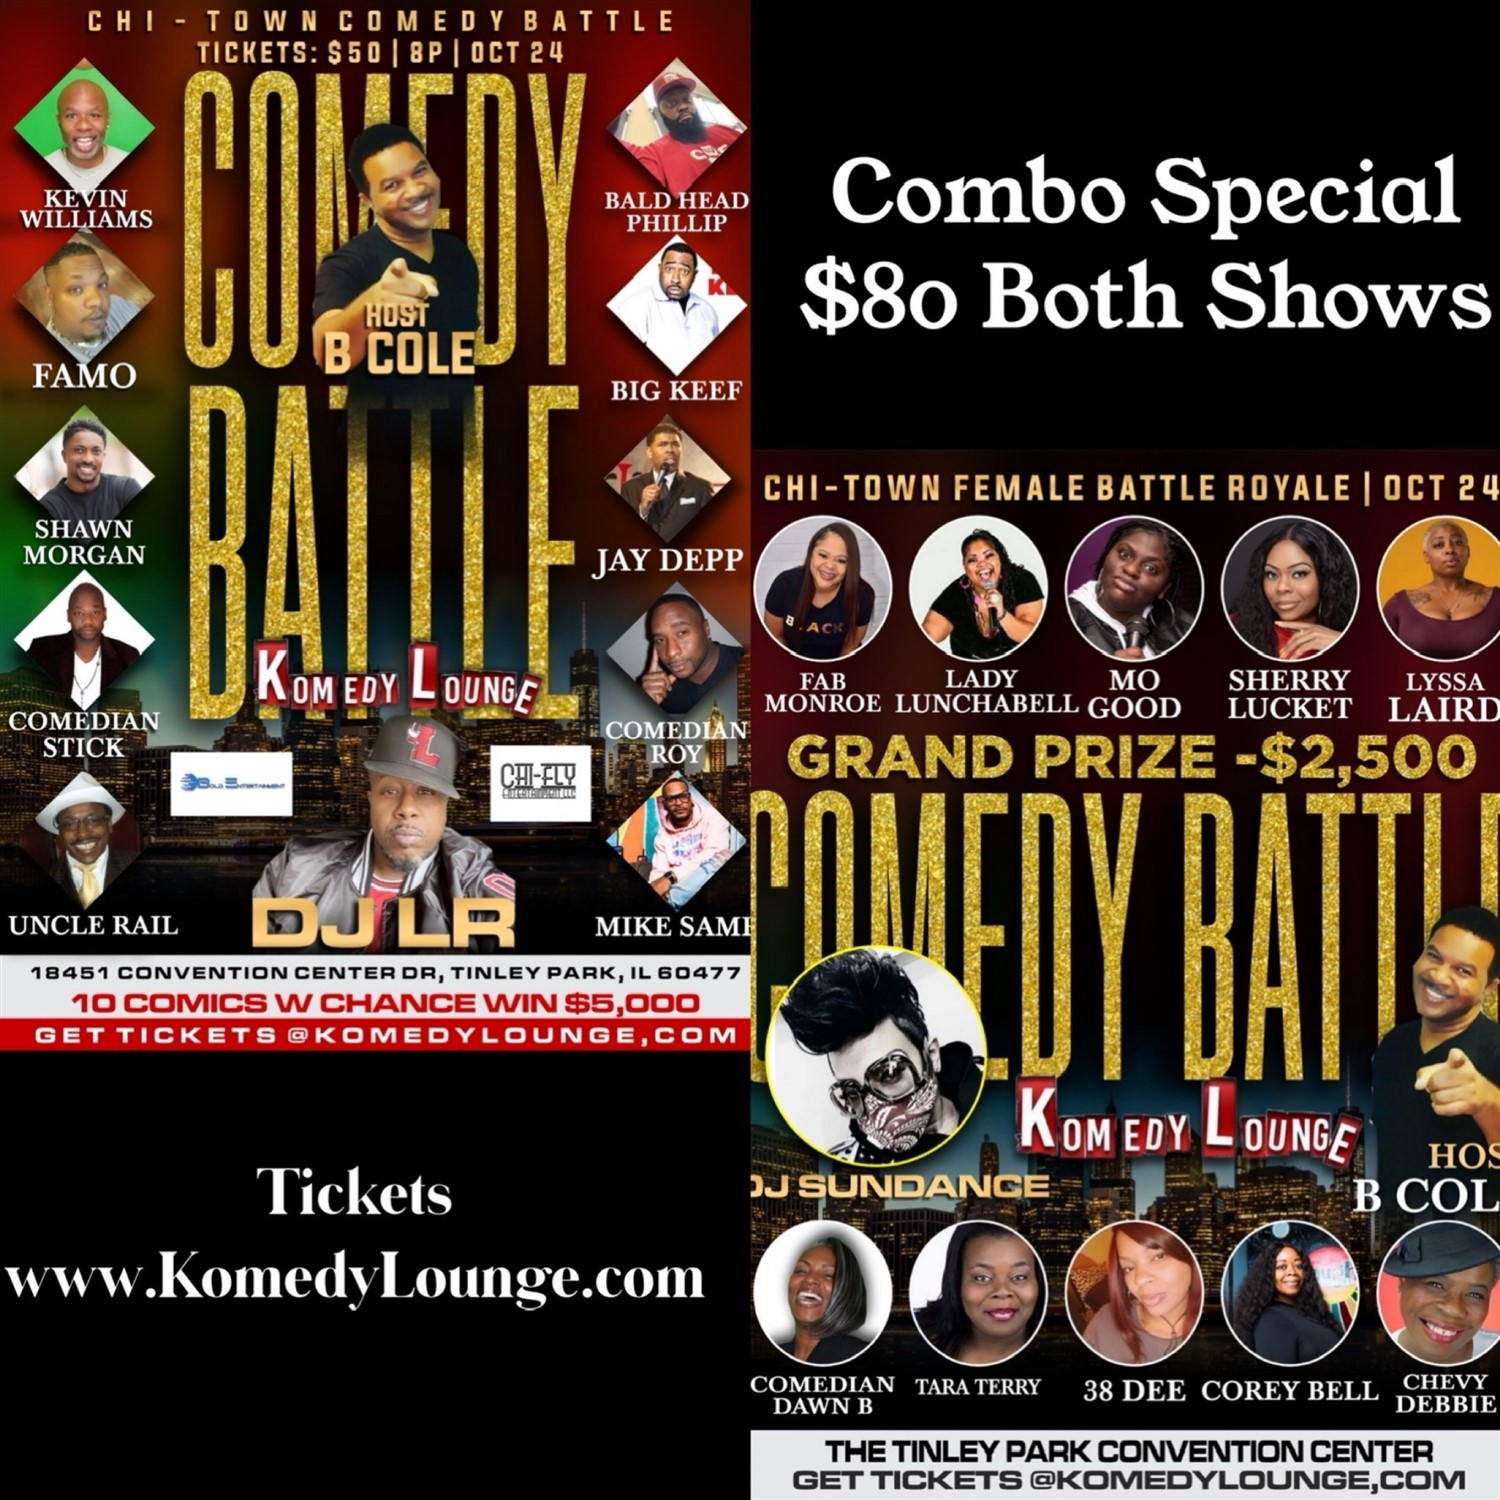 Combo Chicago Battle Royale BOTH Shows 2 Battles 1 Night: Women start 5pm, Men start 8pm on Oct 24, 20:00@Tinley Park Convention Center - Buy tickets and Get information on komedylounge.com